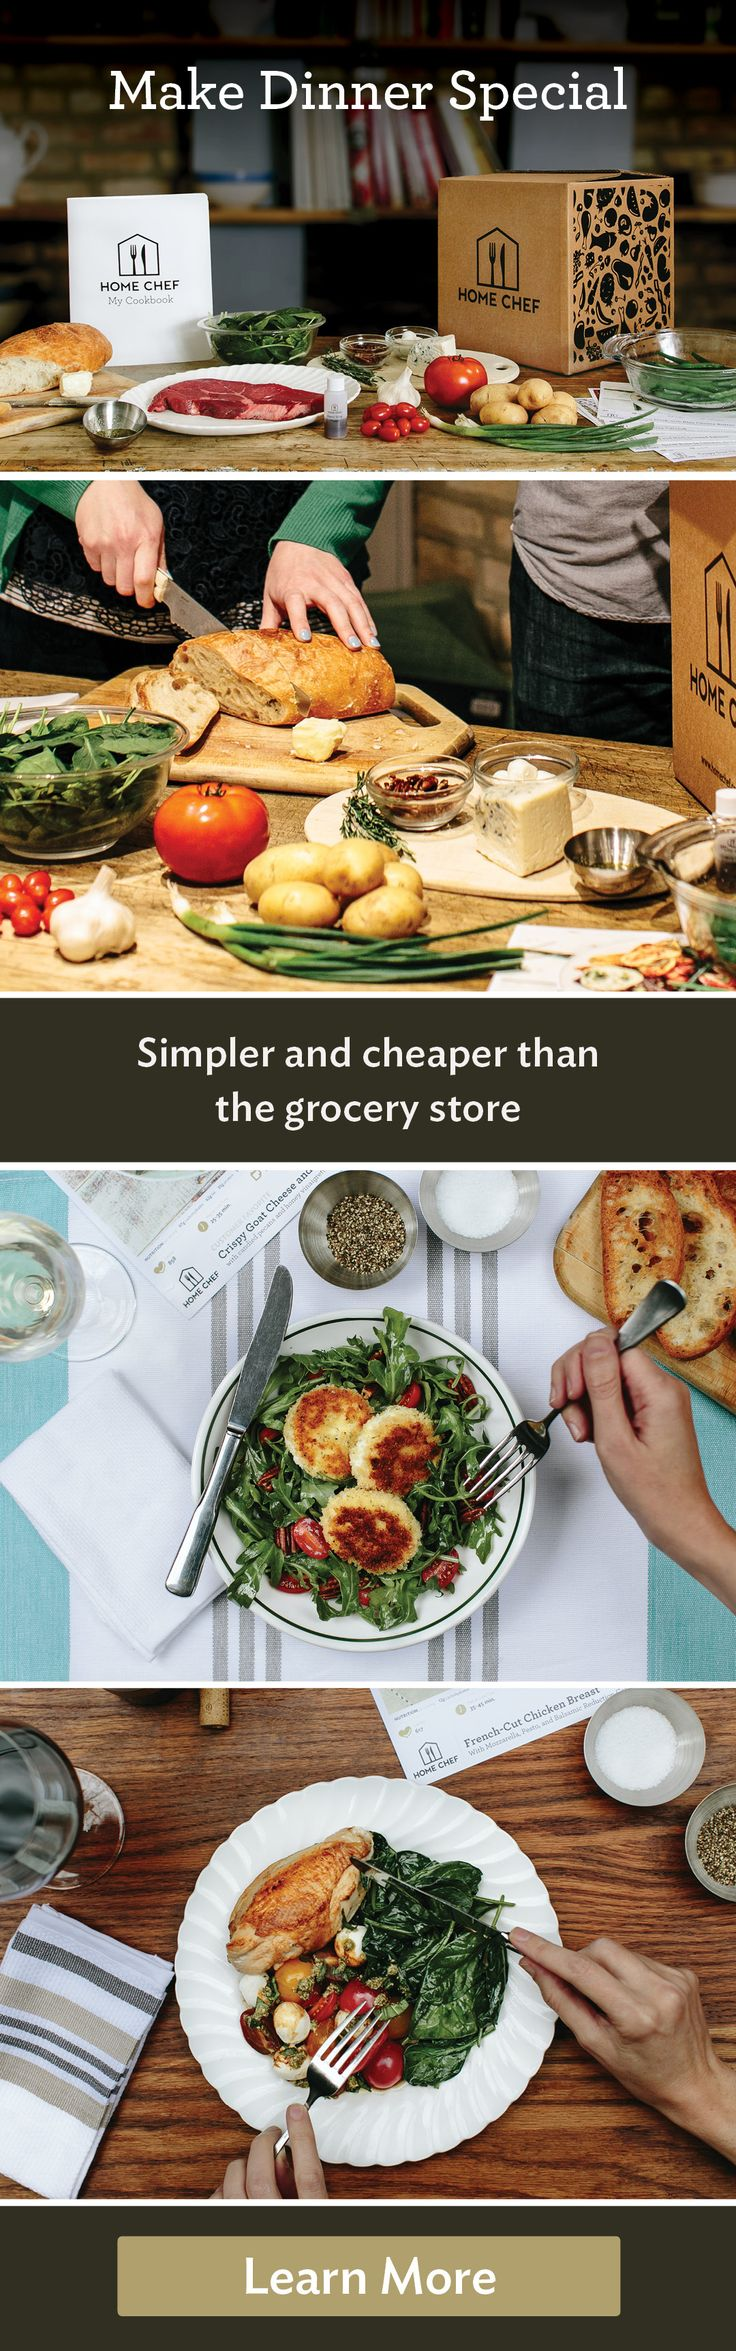 ABC7 found that Home Chef is more affordable than shopping the same ingredients at a supermarket. Not only do our meal kits save you time, they can save you over $20 per entrée. Click here to see ABC7's news segment on us and get $30 off your first order when you try Home Chef today!